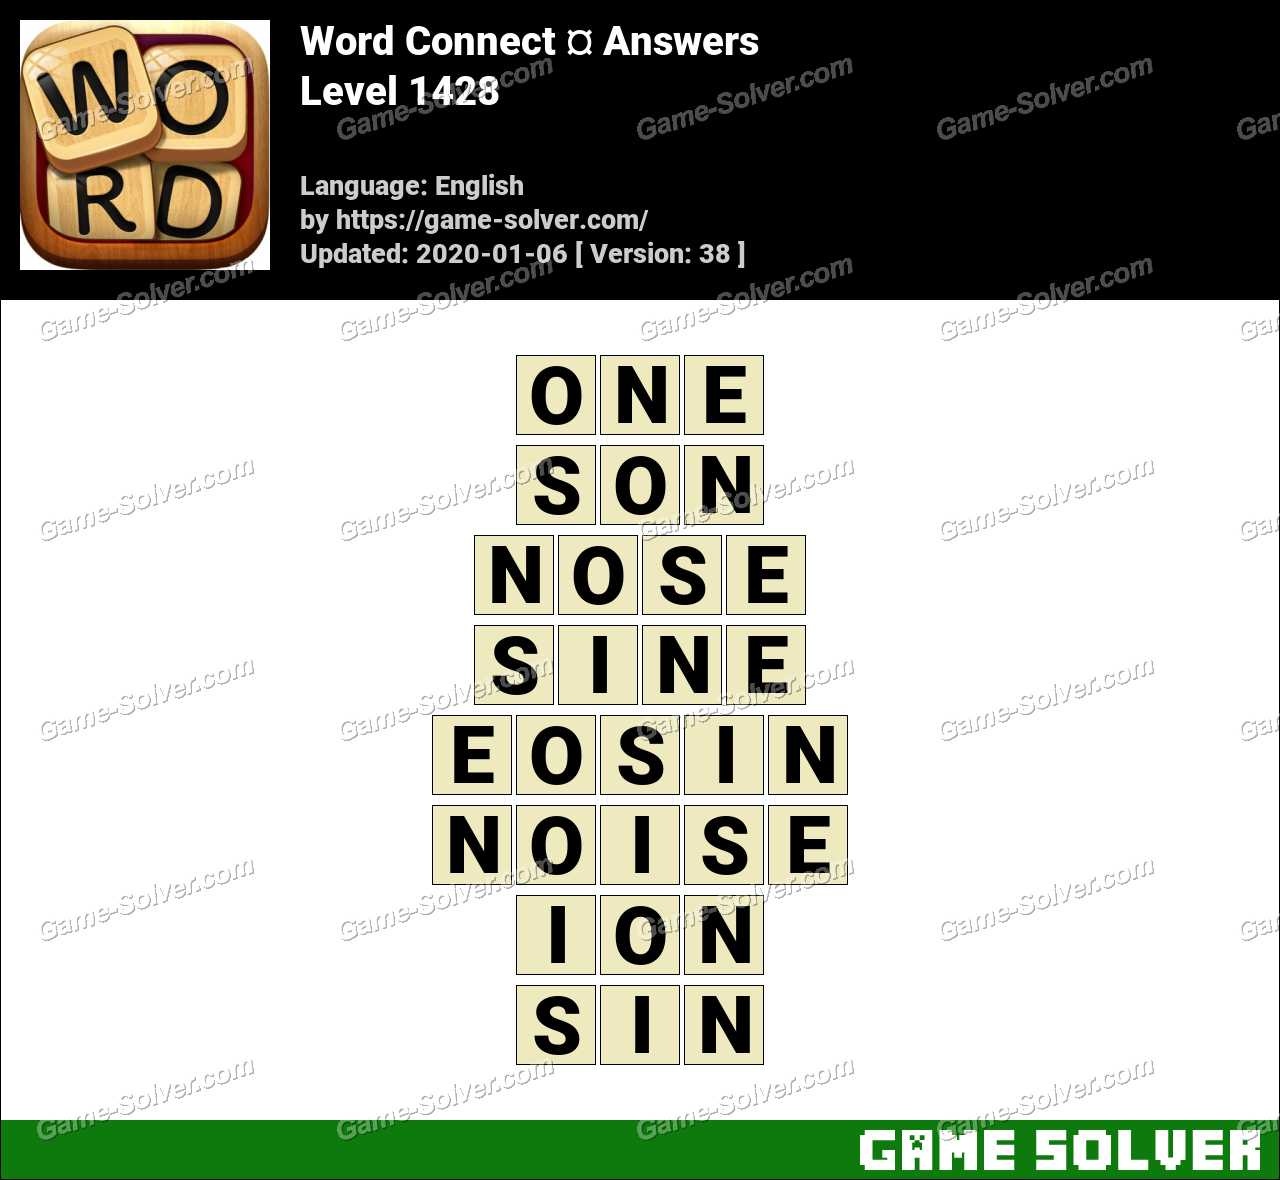 Word Connect Level 1428 Answers